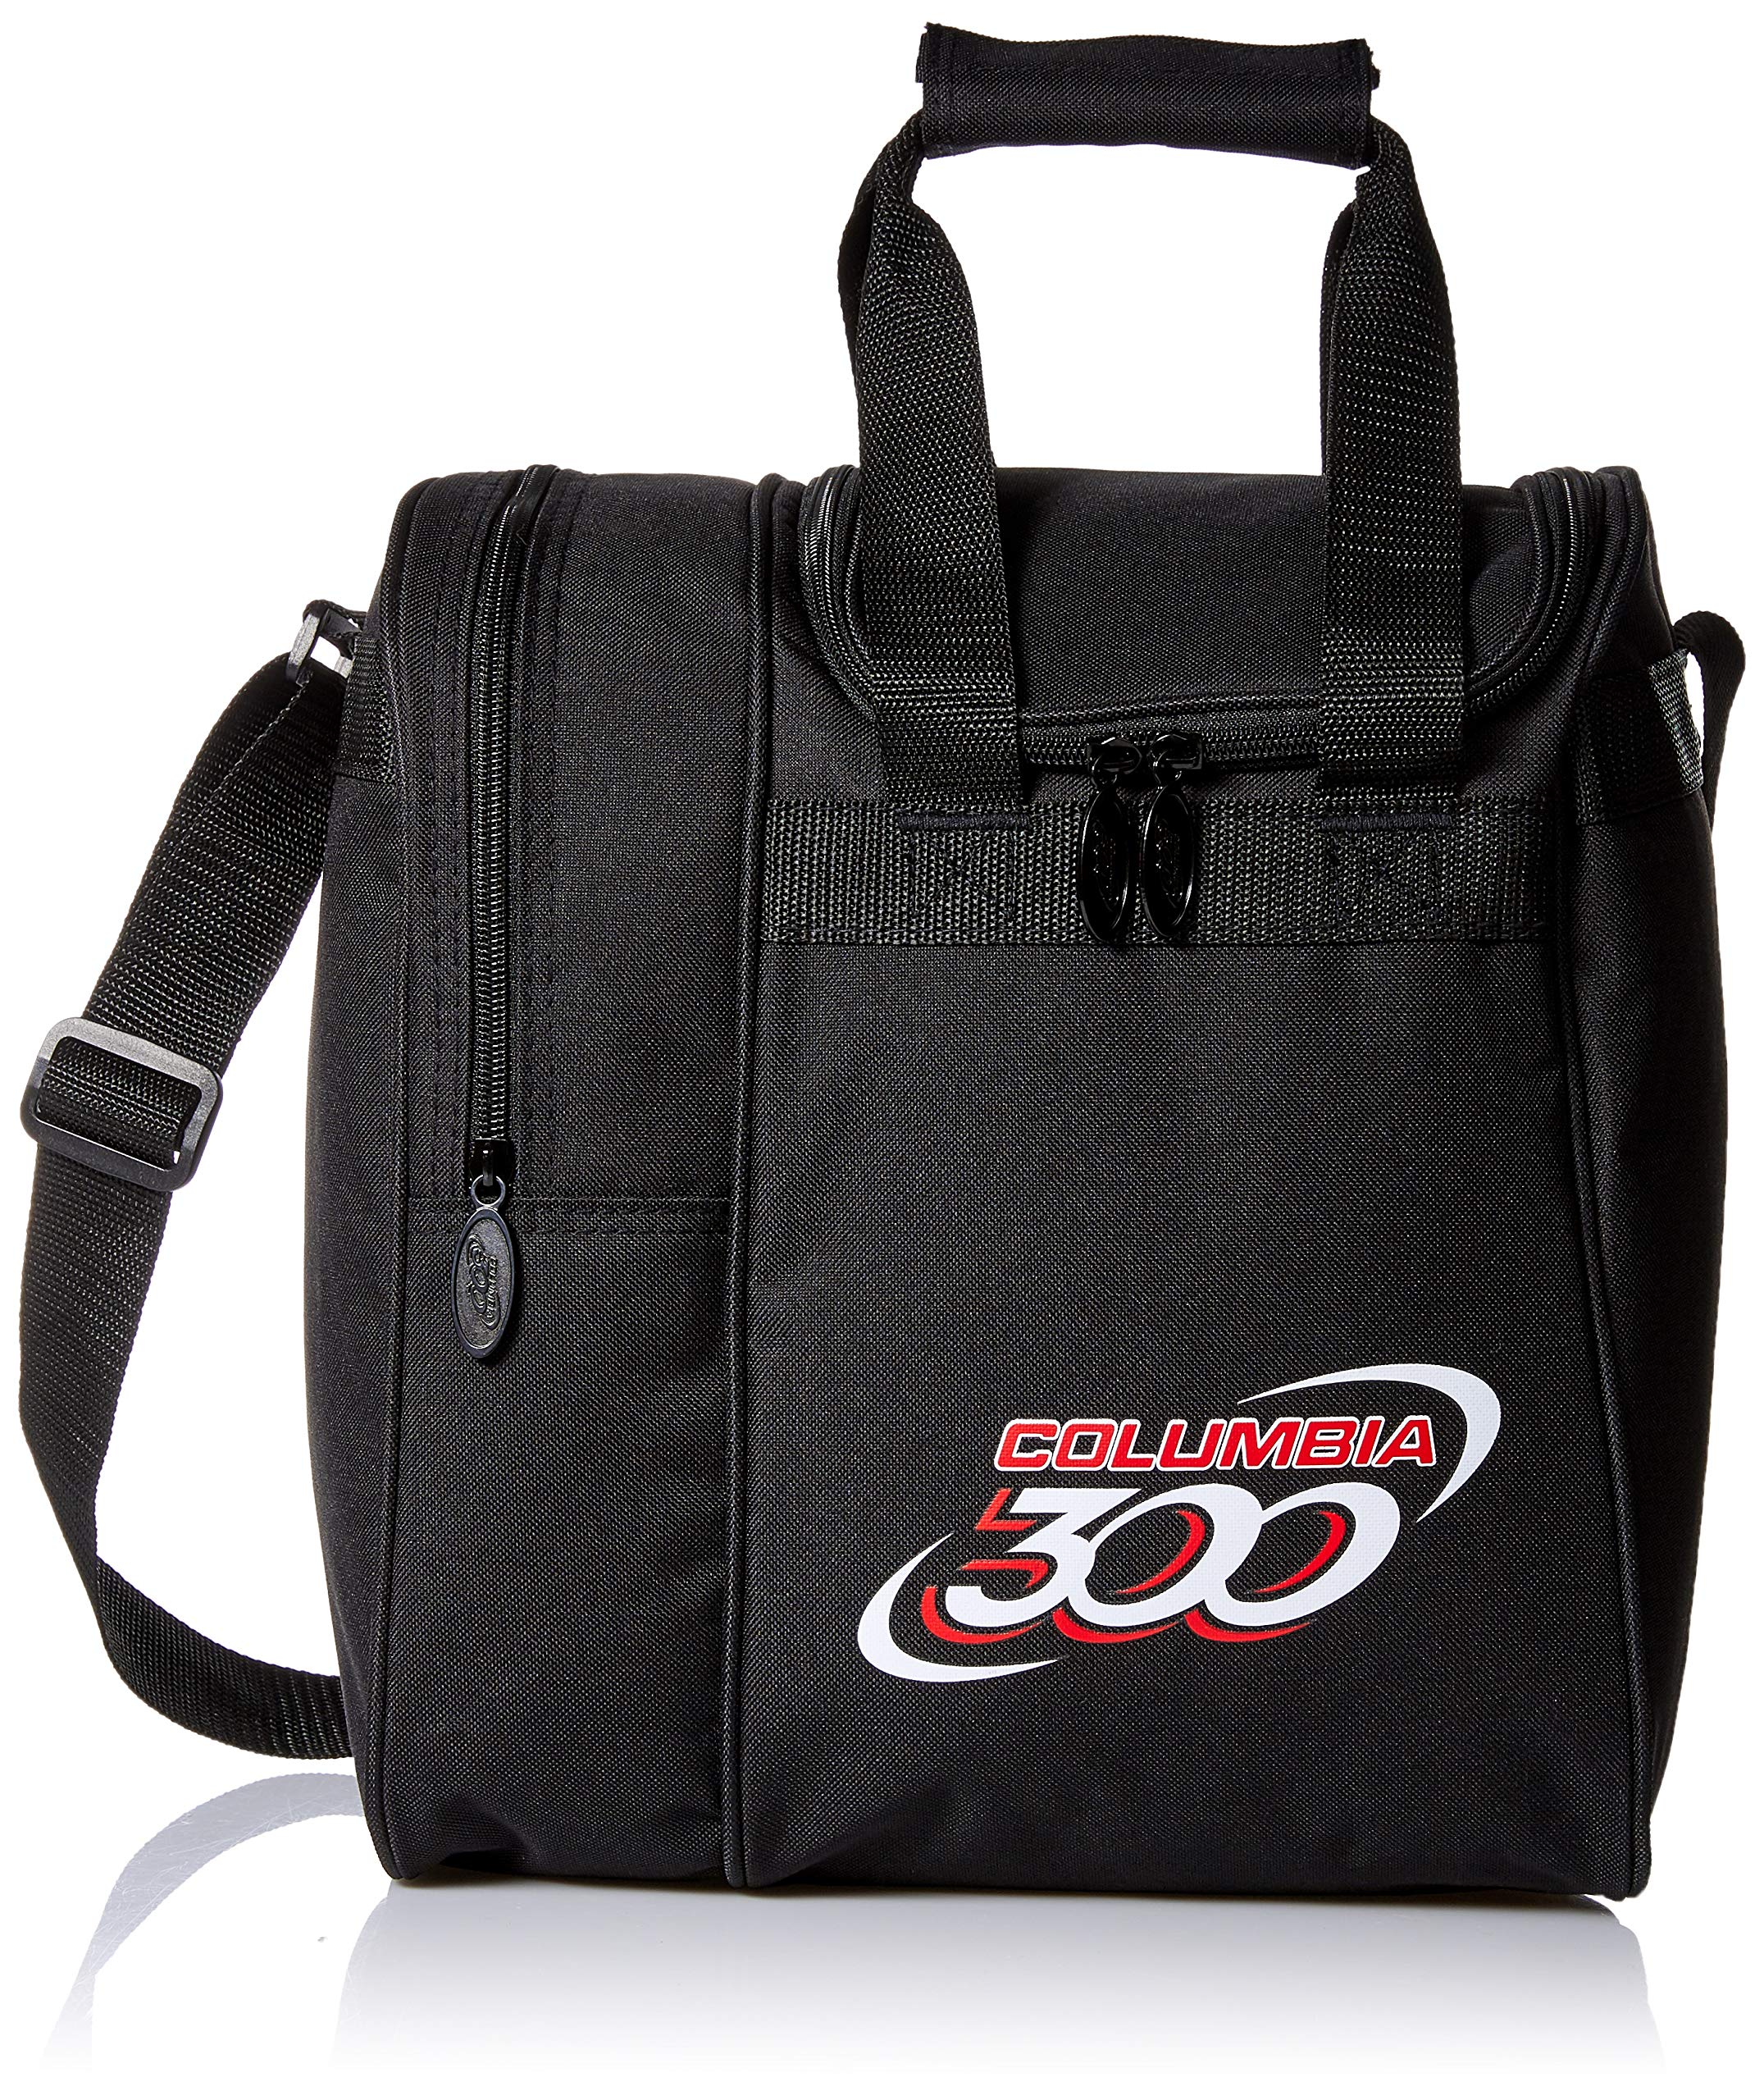 Columbia 300 Bowling Products 300 Team Single Tote-Black, Black by Columbia